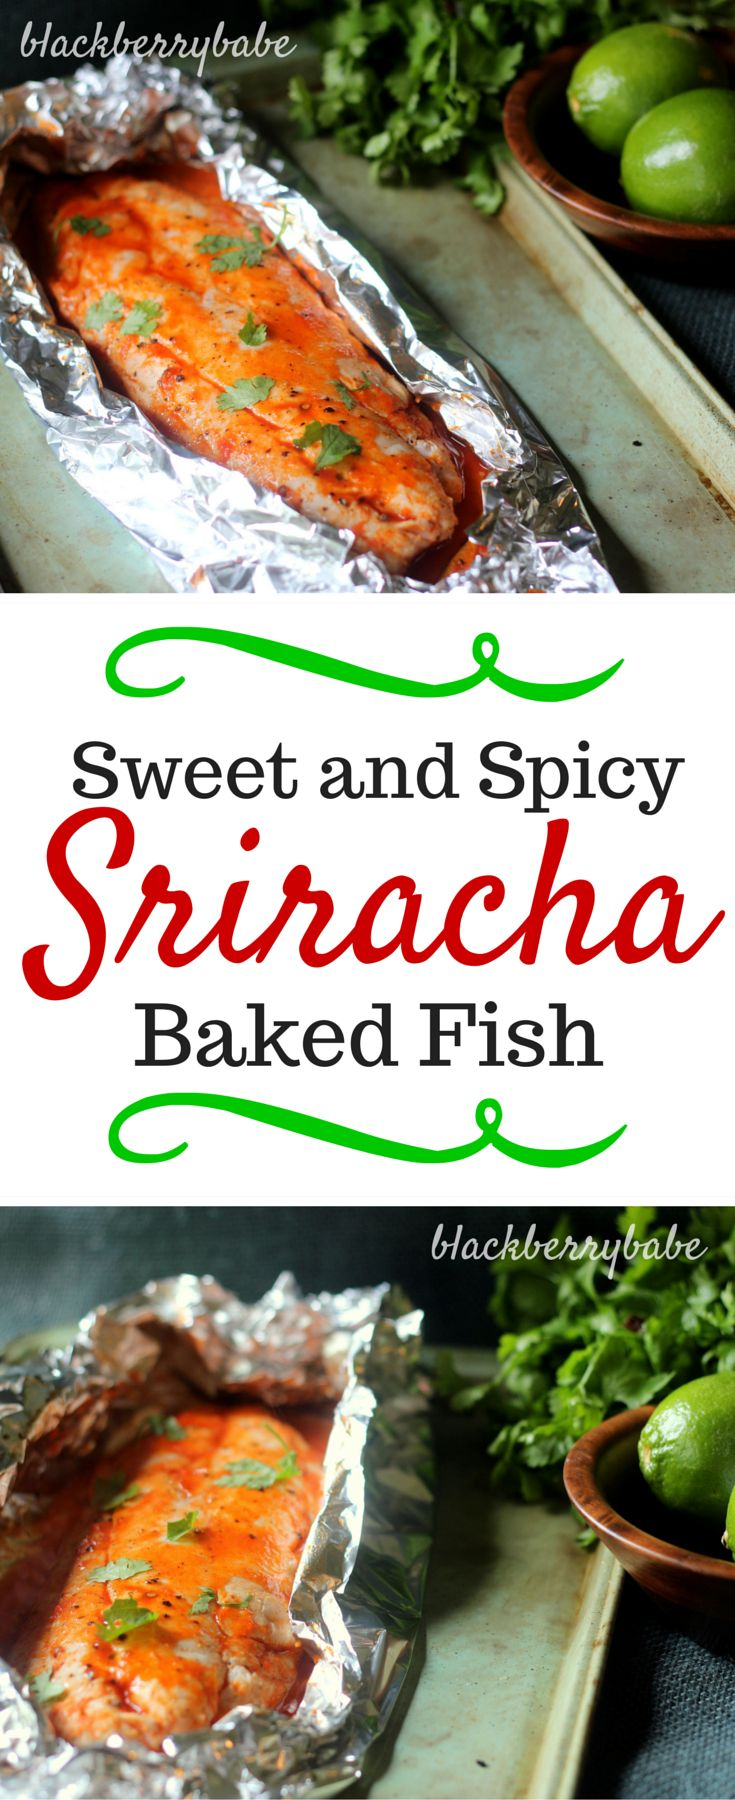 Sweet and Spicy Sriracha Baked Fish #recipe #fish #sriracha | Recipe by blackberrybabe.com | Red Snapper, Tilapia, Grouper, White Fish